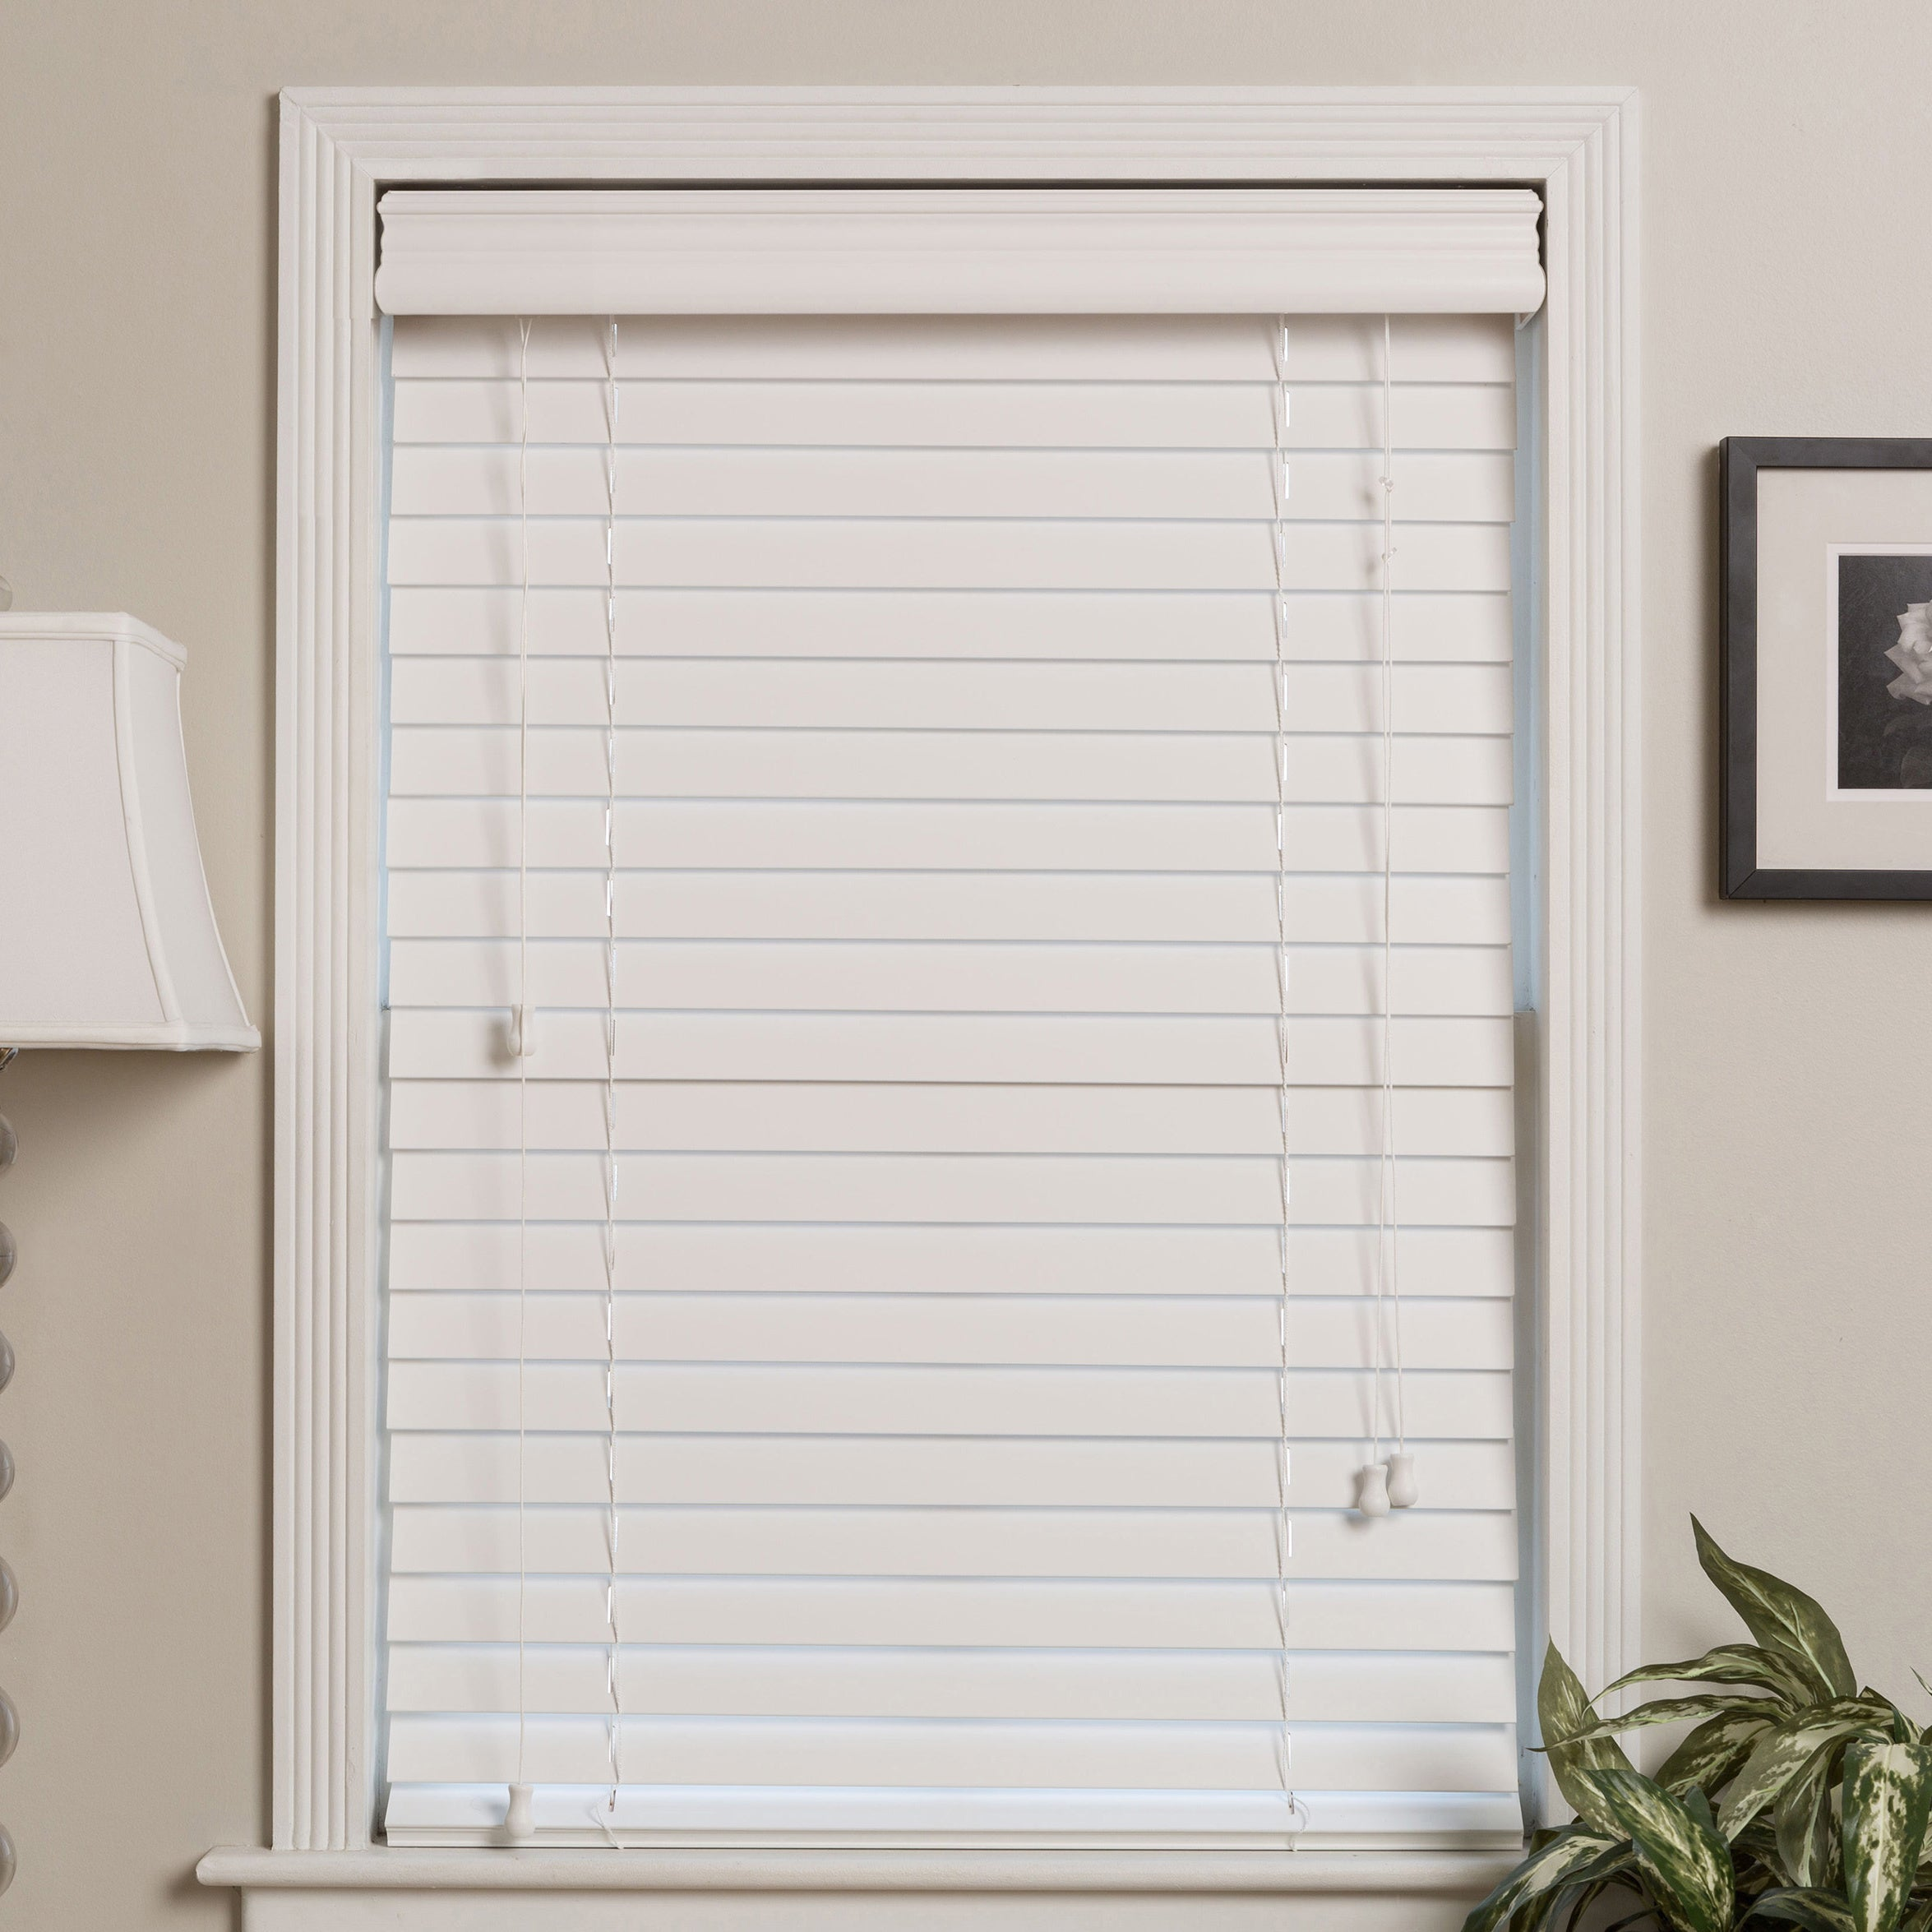 wood install to handyman gray view all family window windows blinds how instlwndwblds